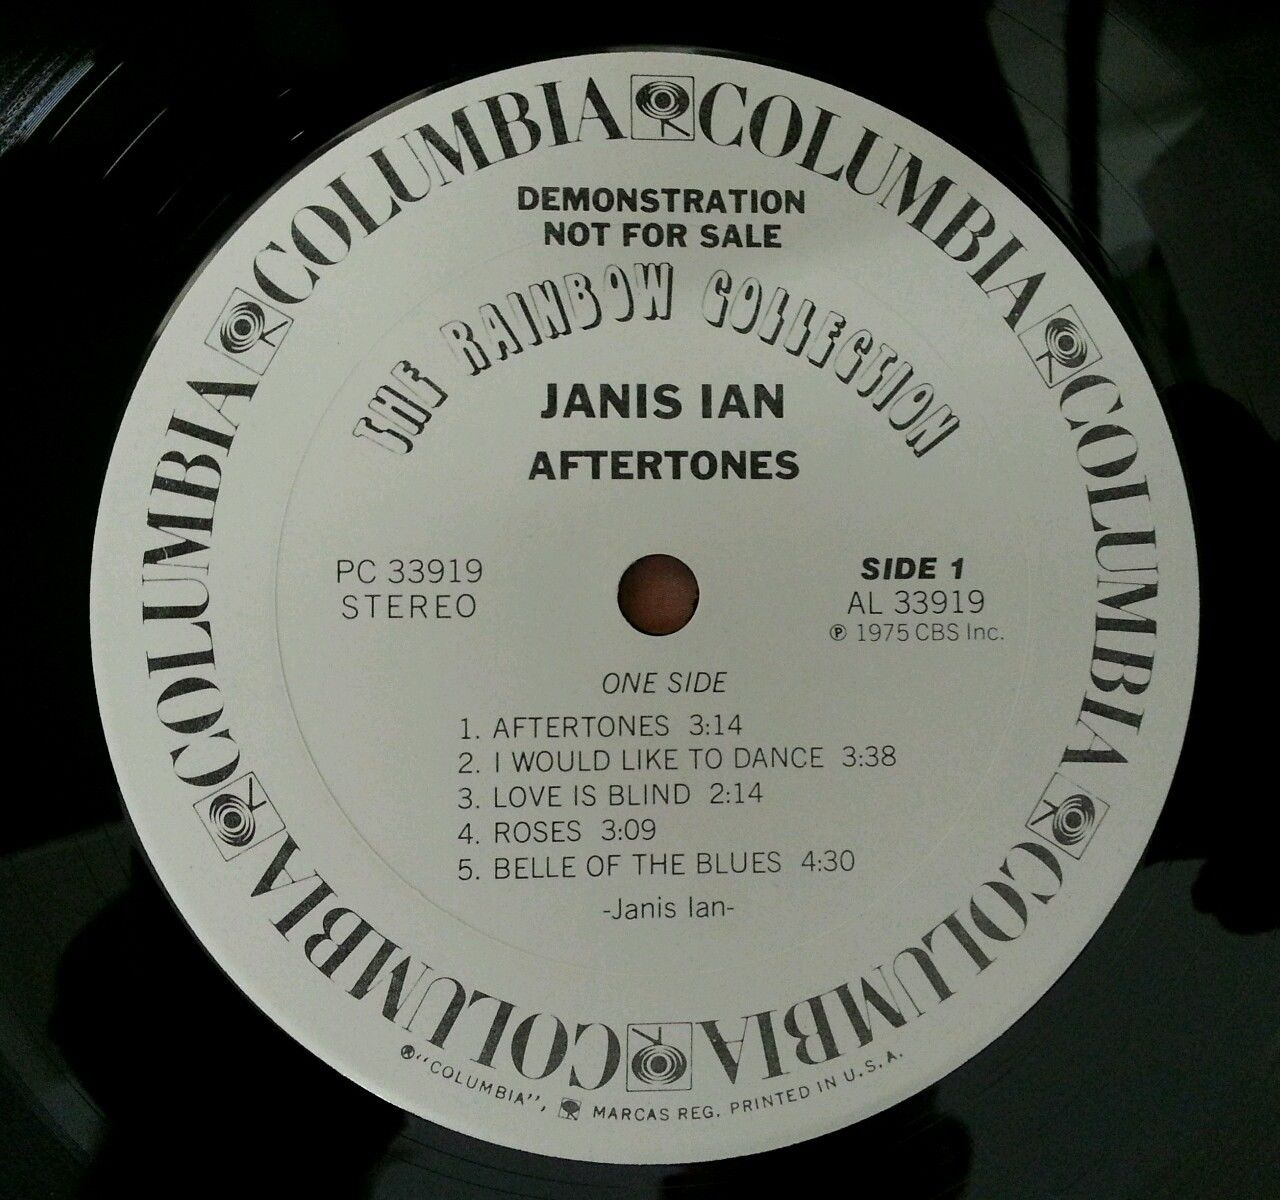 JANIS-IAN-Aftertones-Vinyl-Lp-Record-DEMO-Made-In-USA-White-Label-NMNM-281719601042-3